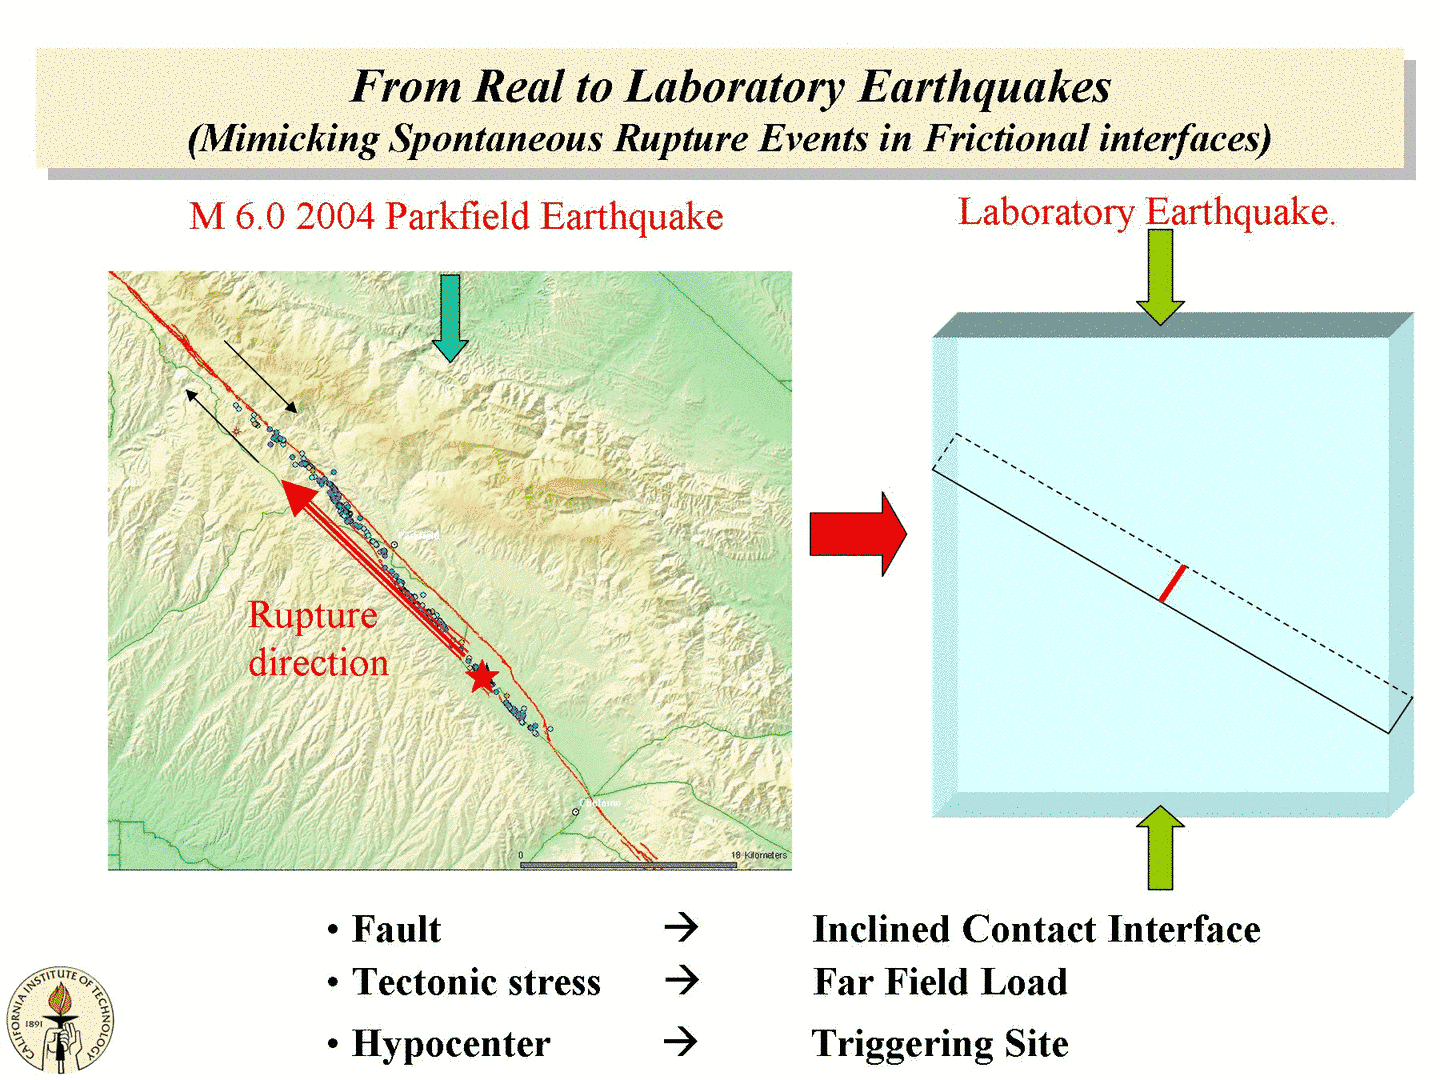 Earthquake 11-03-05) Laboratory